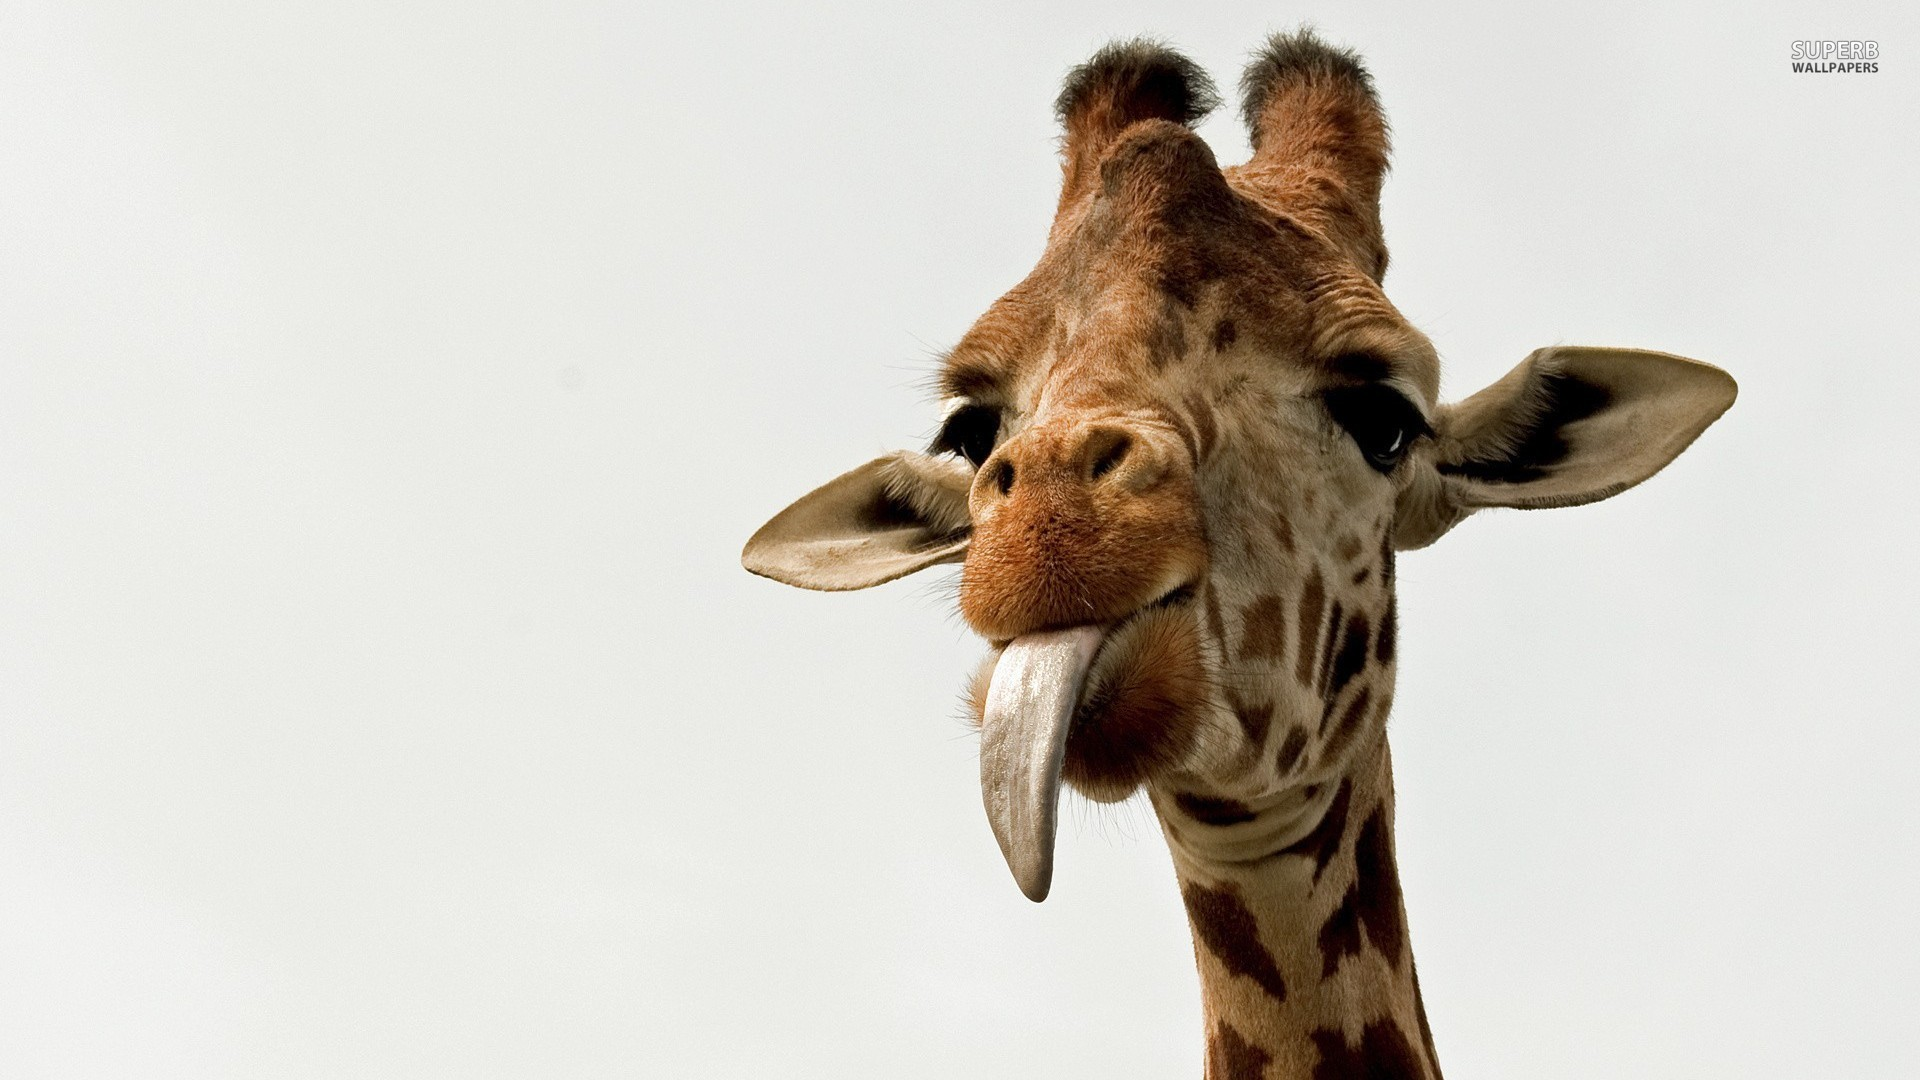 2) The means of feeding used by giraffes is called browsing.